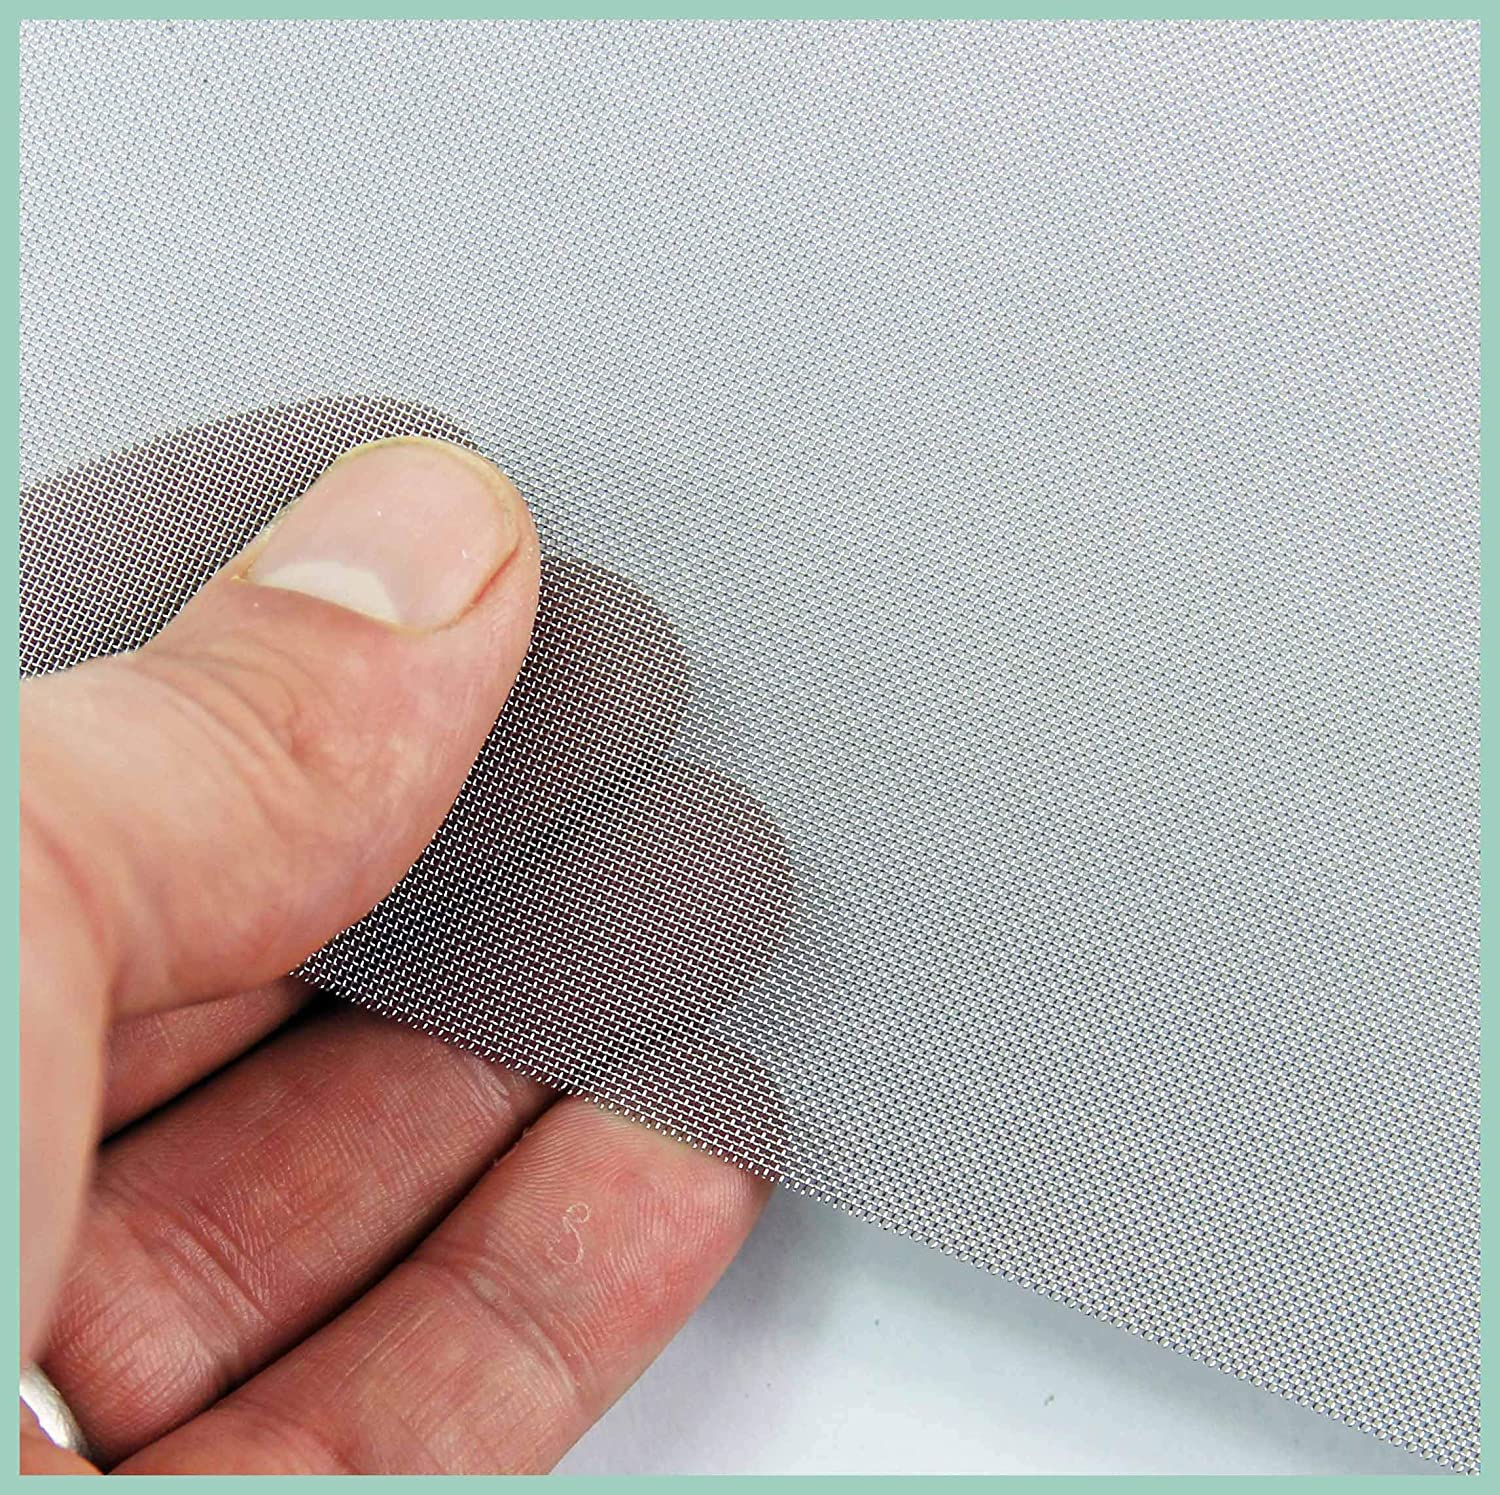 - Stainless Steel Woven Mesh by THE MESH COMPANY 200 Holes Per Linear Inch Very Fine 300 x 300mm Sheet #200 x 0.05mm